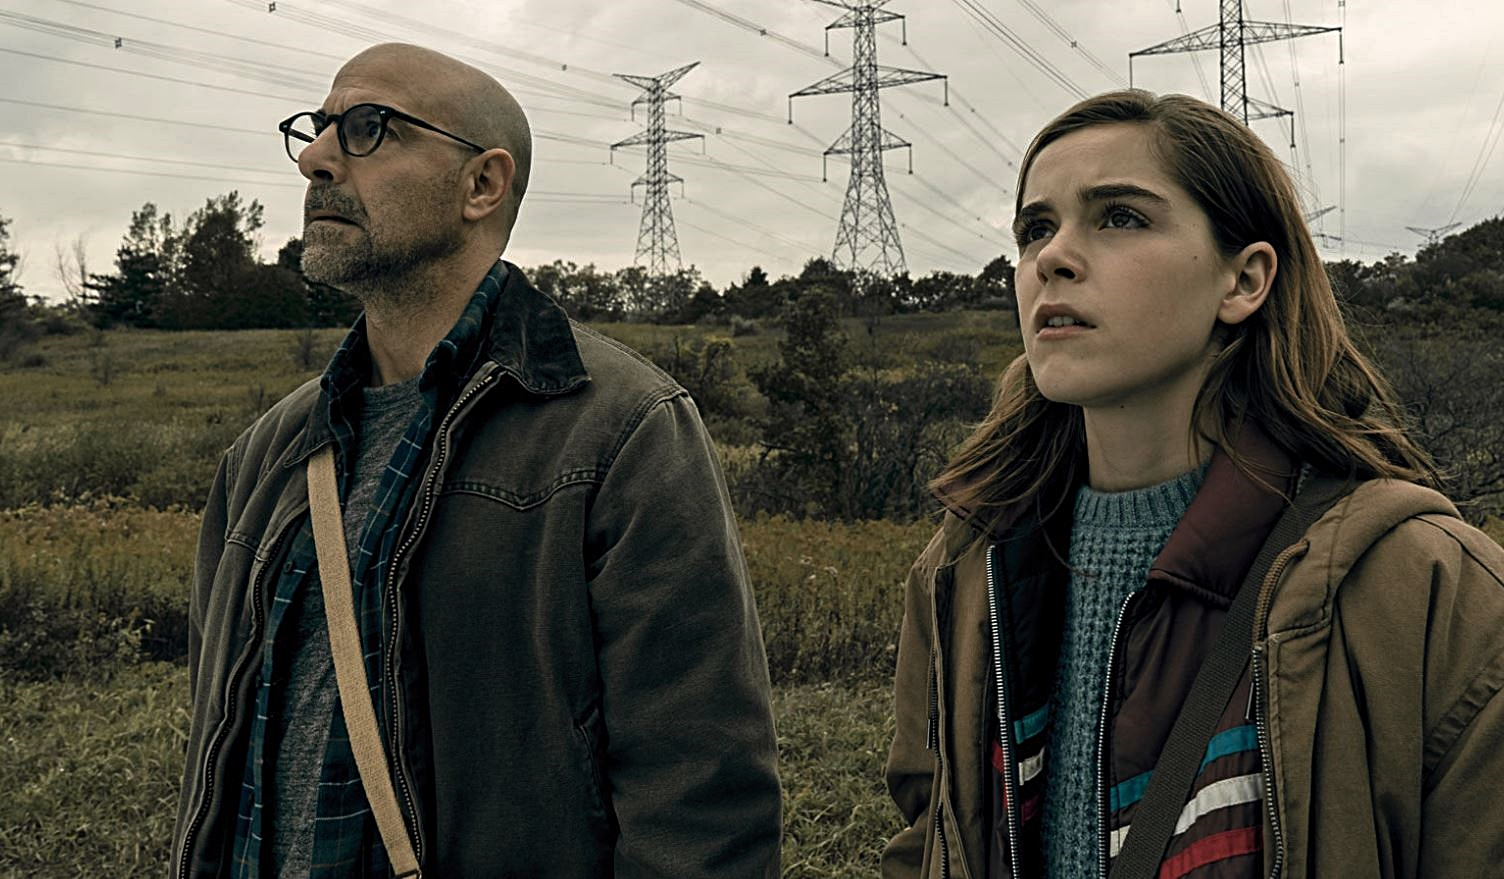 Father and daughter Stanley Tucci and Kiernan Shipka unable to make a noise lest they be attacked by creatures in The Silence (2019)